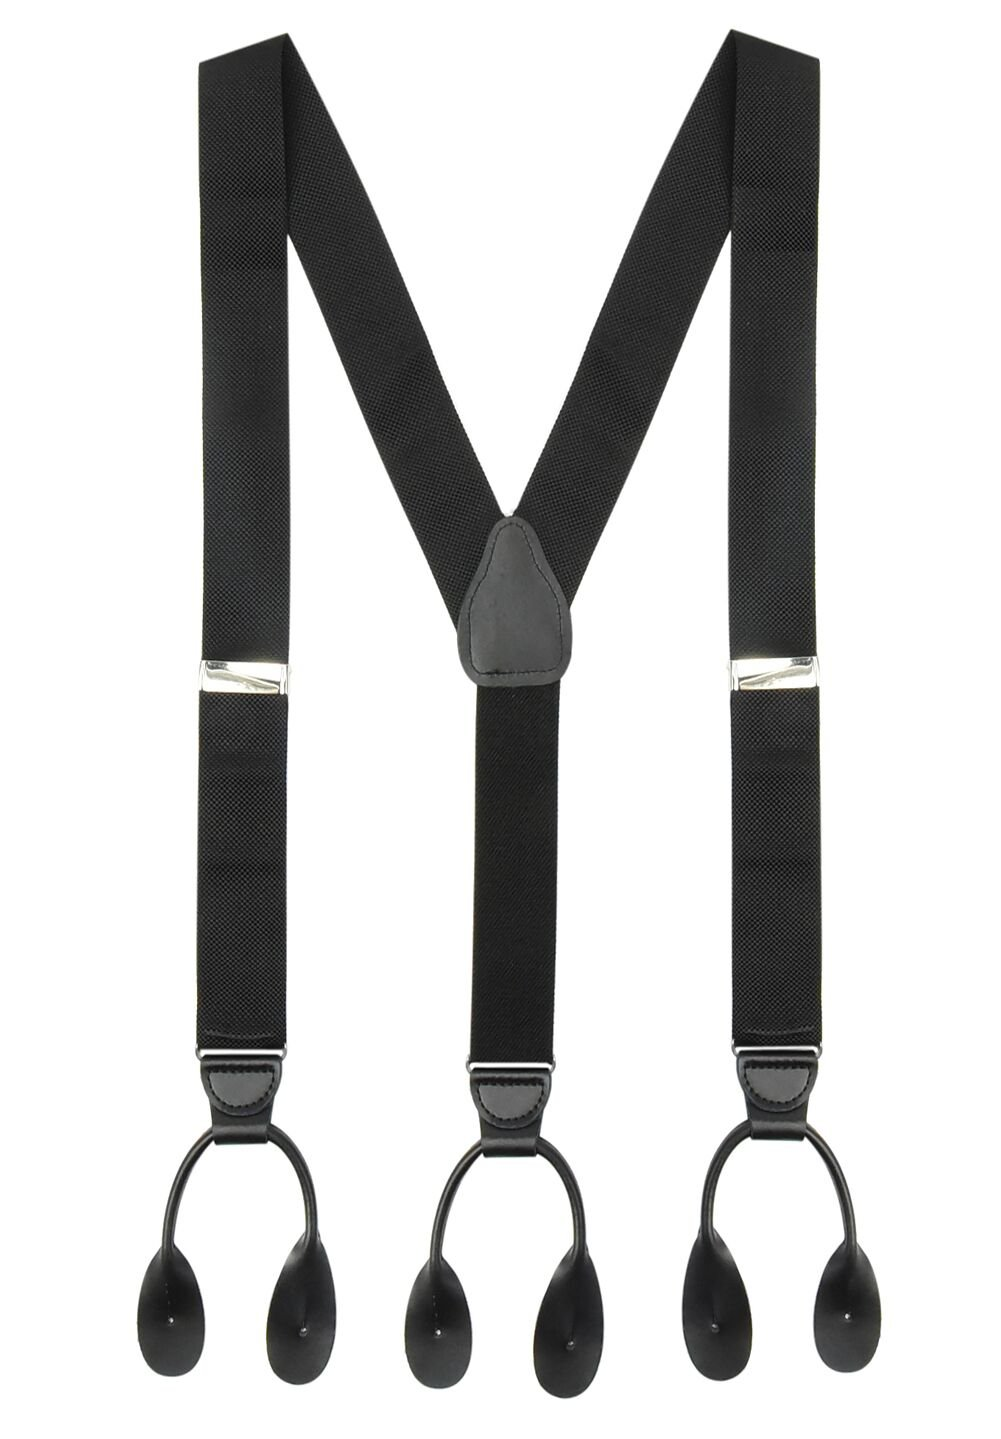 Suspender for Men MADE IN USA – Y-Back Genuine Leather Trimmed Button End Non-Stretch Tuxedo Suspenders -Black